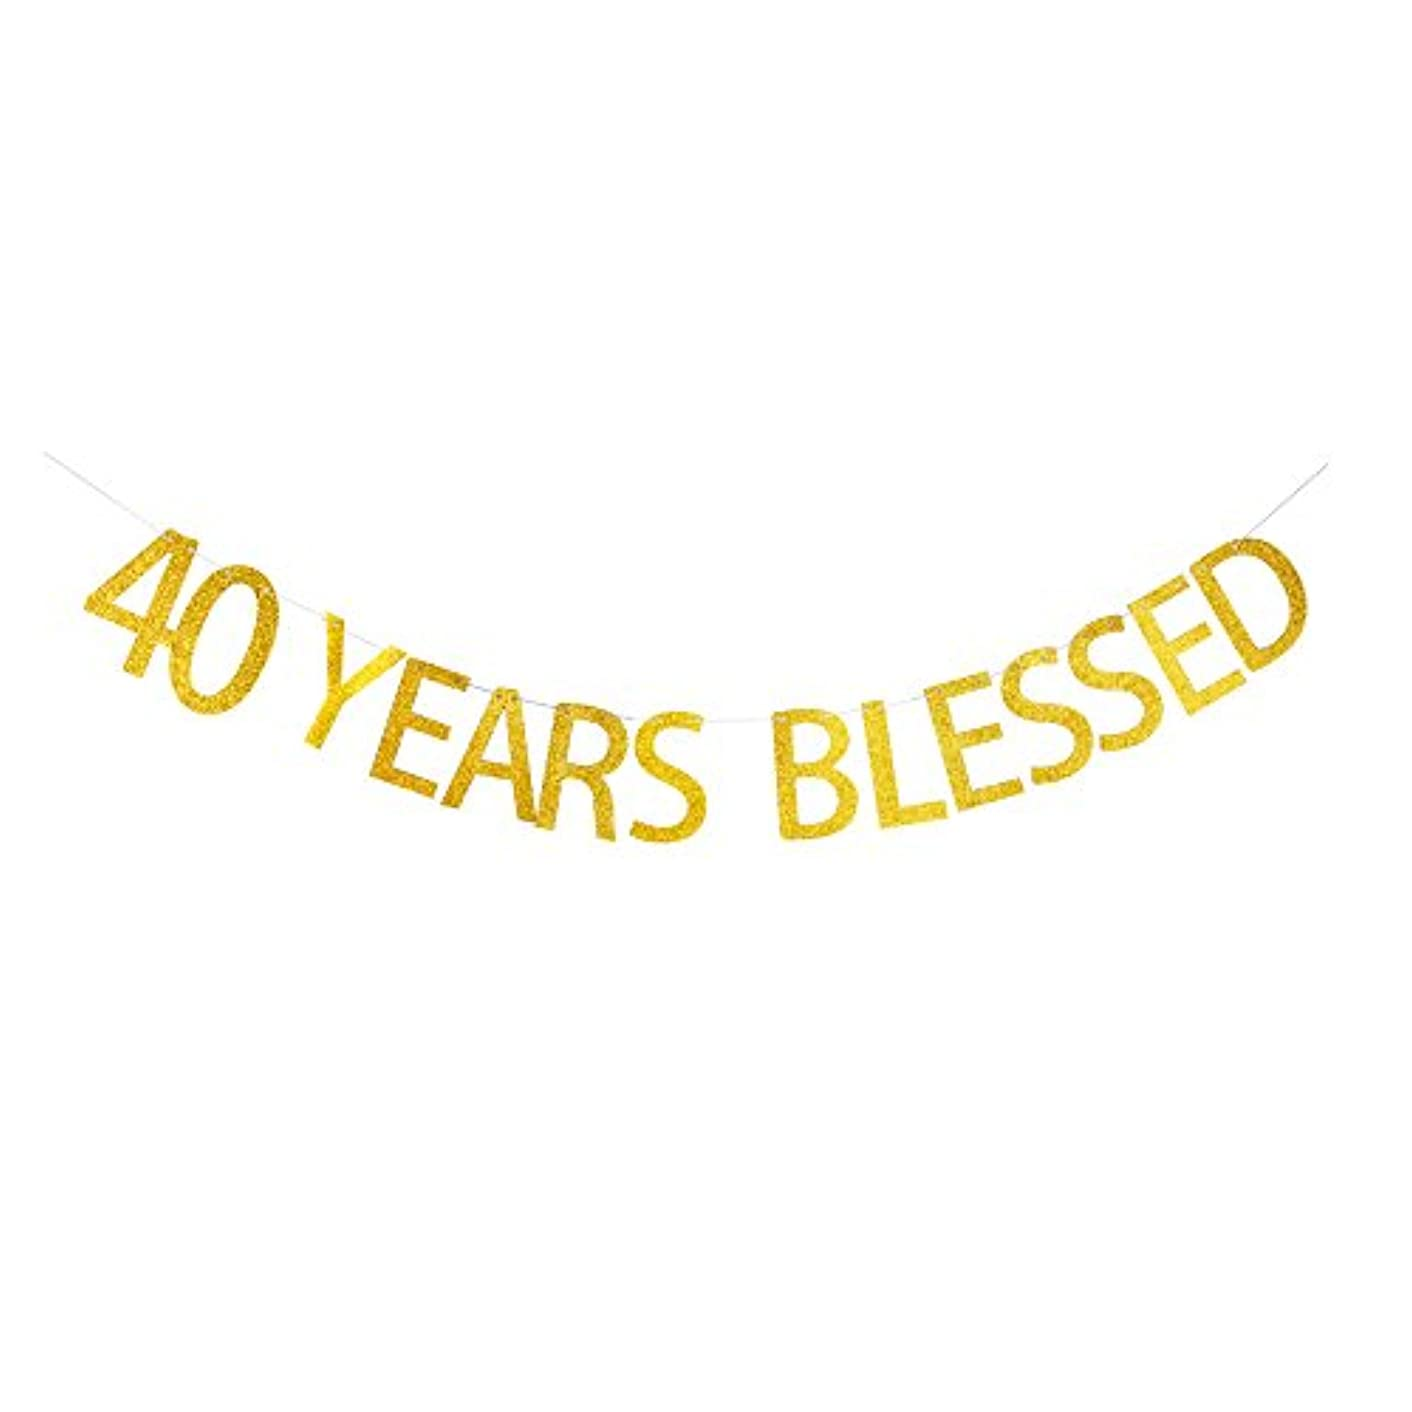 40 Years Blessed Banner Gold Gliter Paper Sign for 40th Birthday/Wedding Anniversary Party Decorations